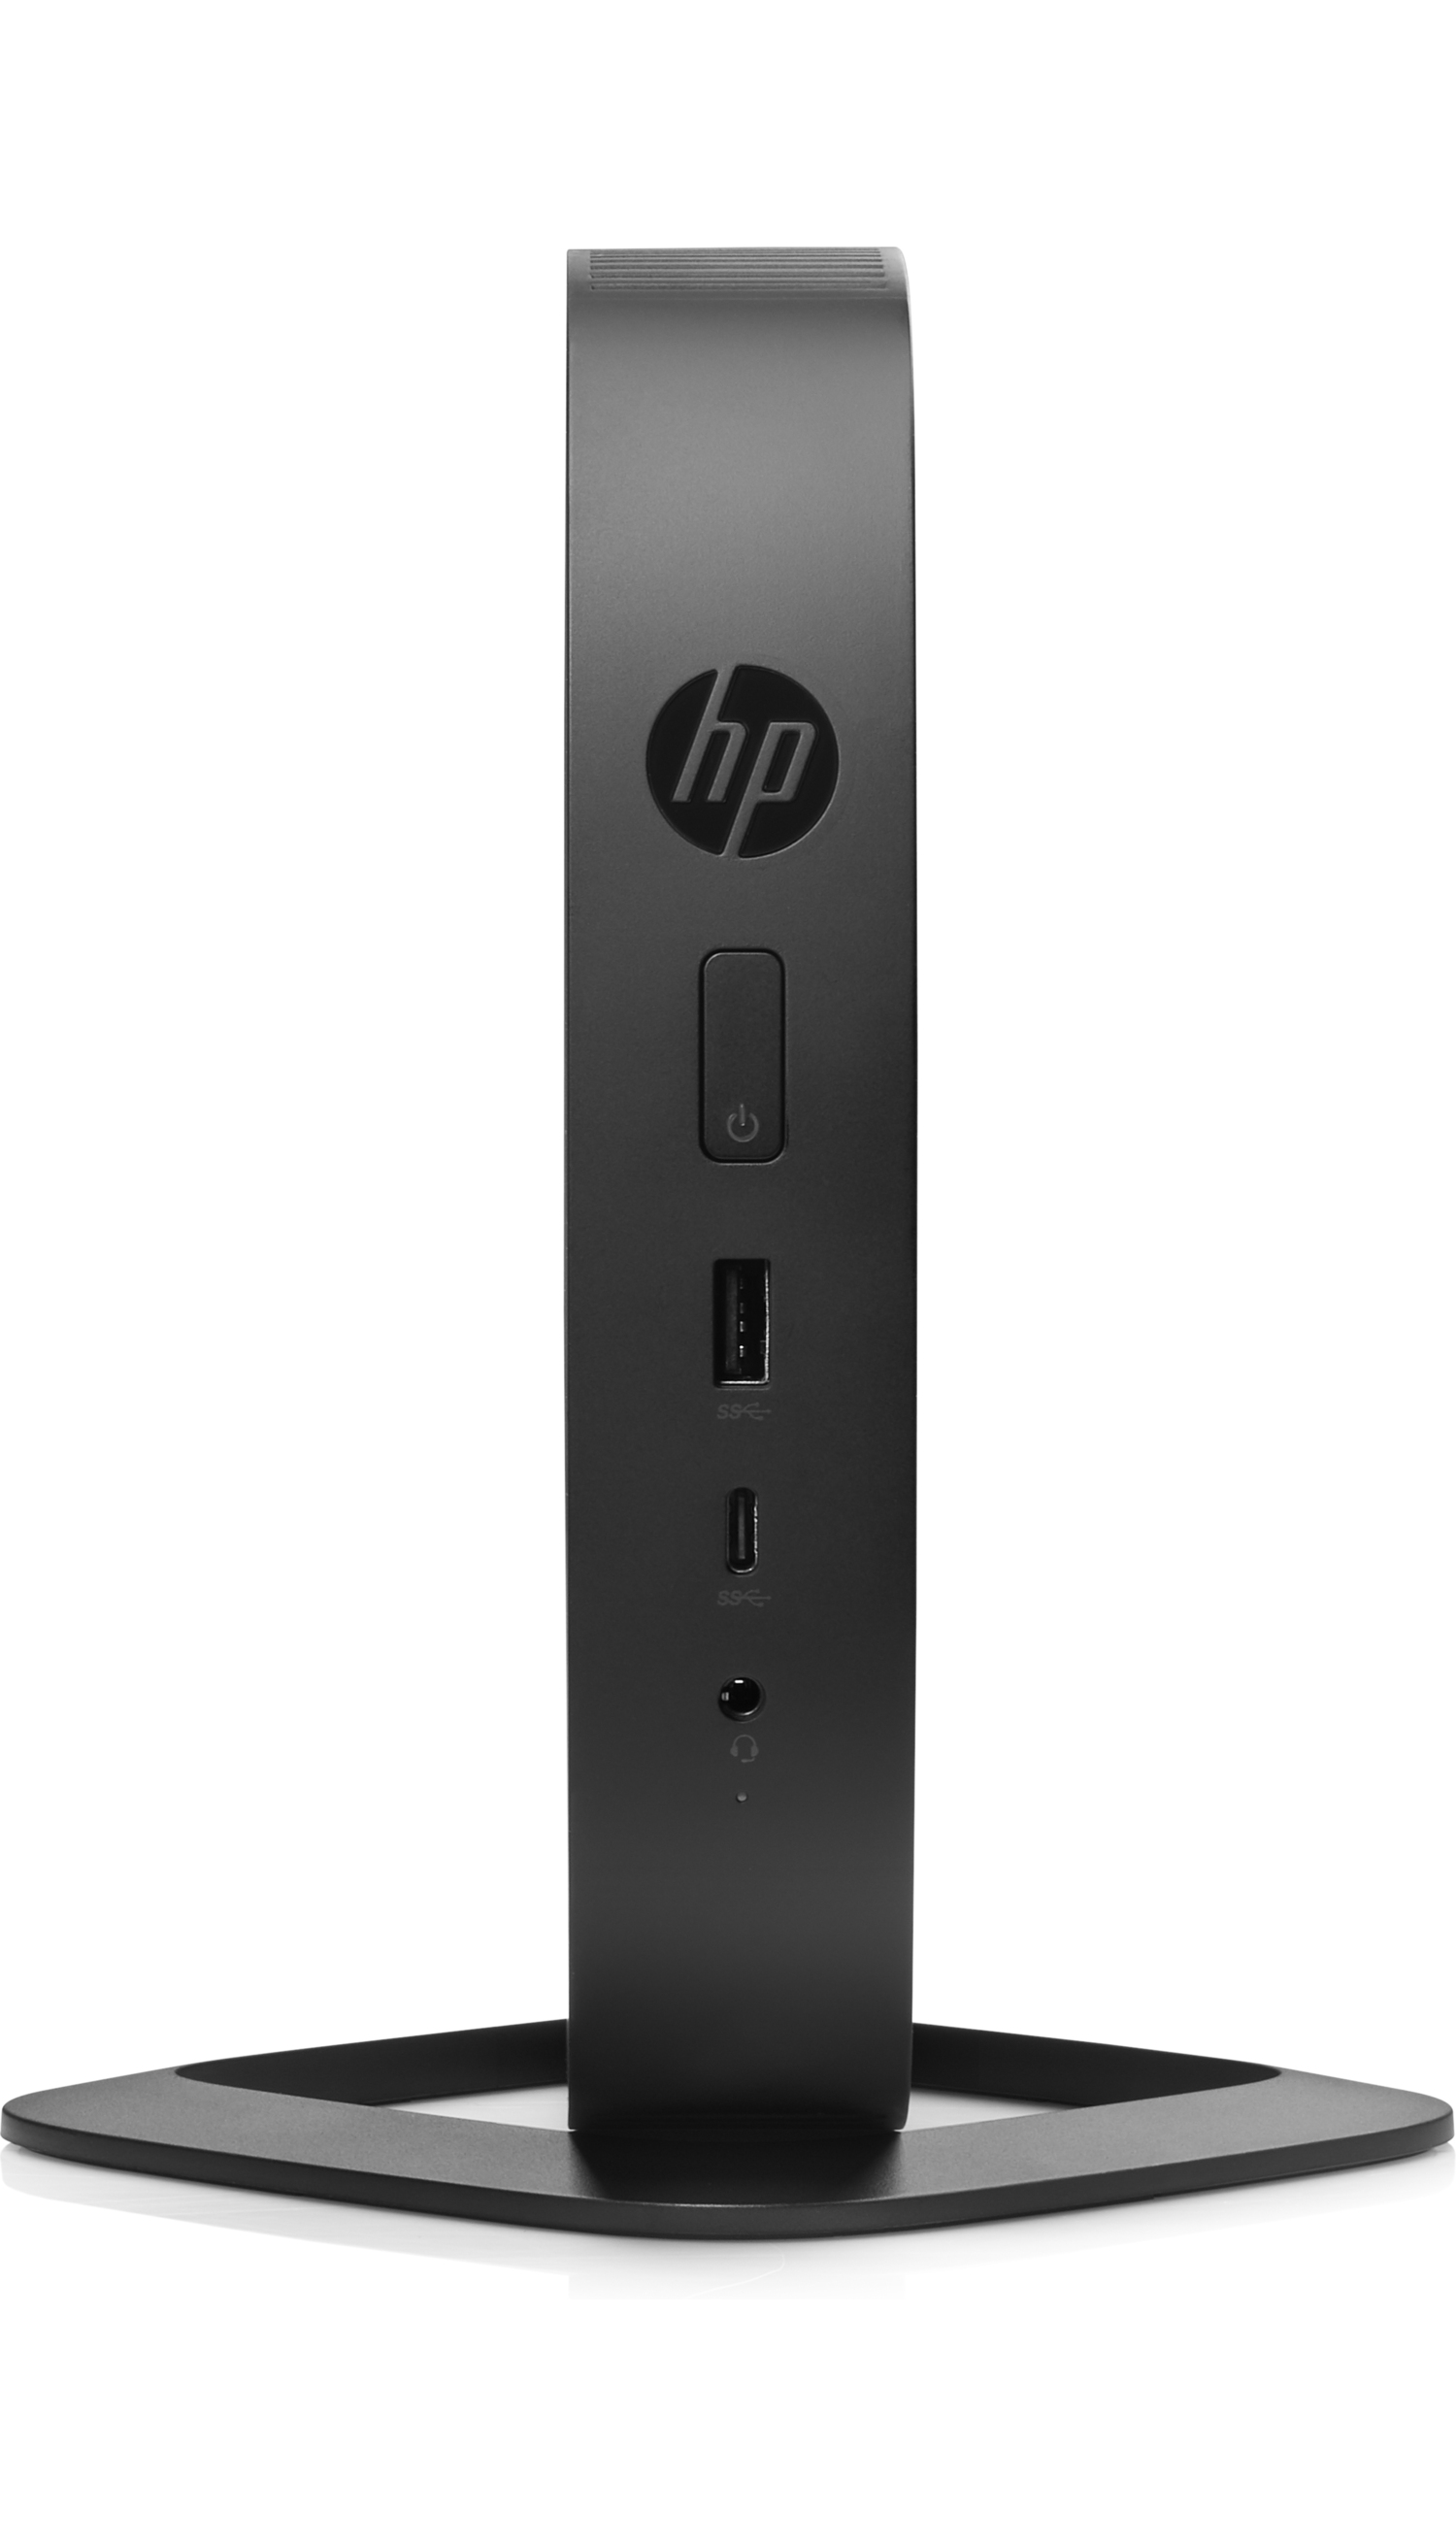 Hewlett-Packard, T530, AMD, GX-215J, 4GB, 8GB, THIN, PRO,